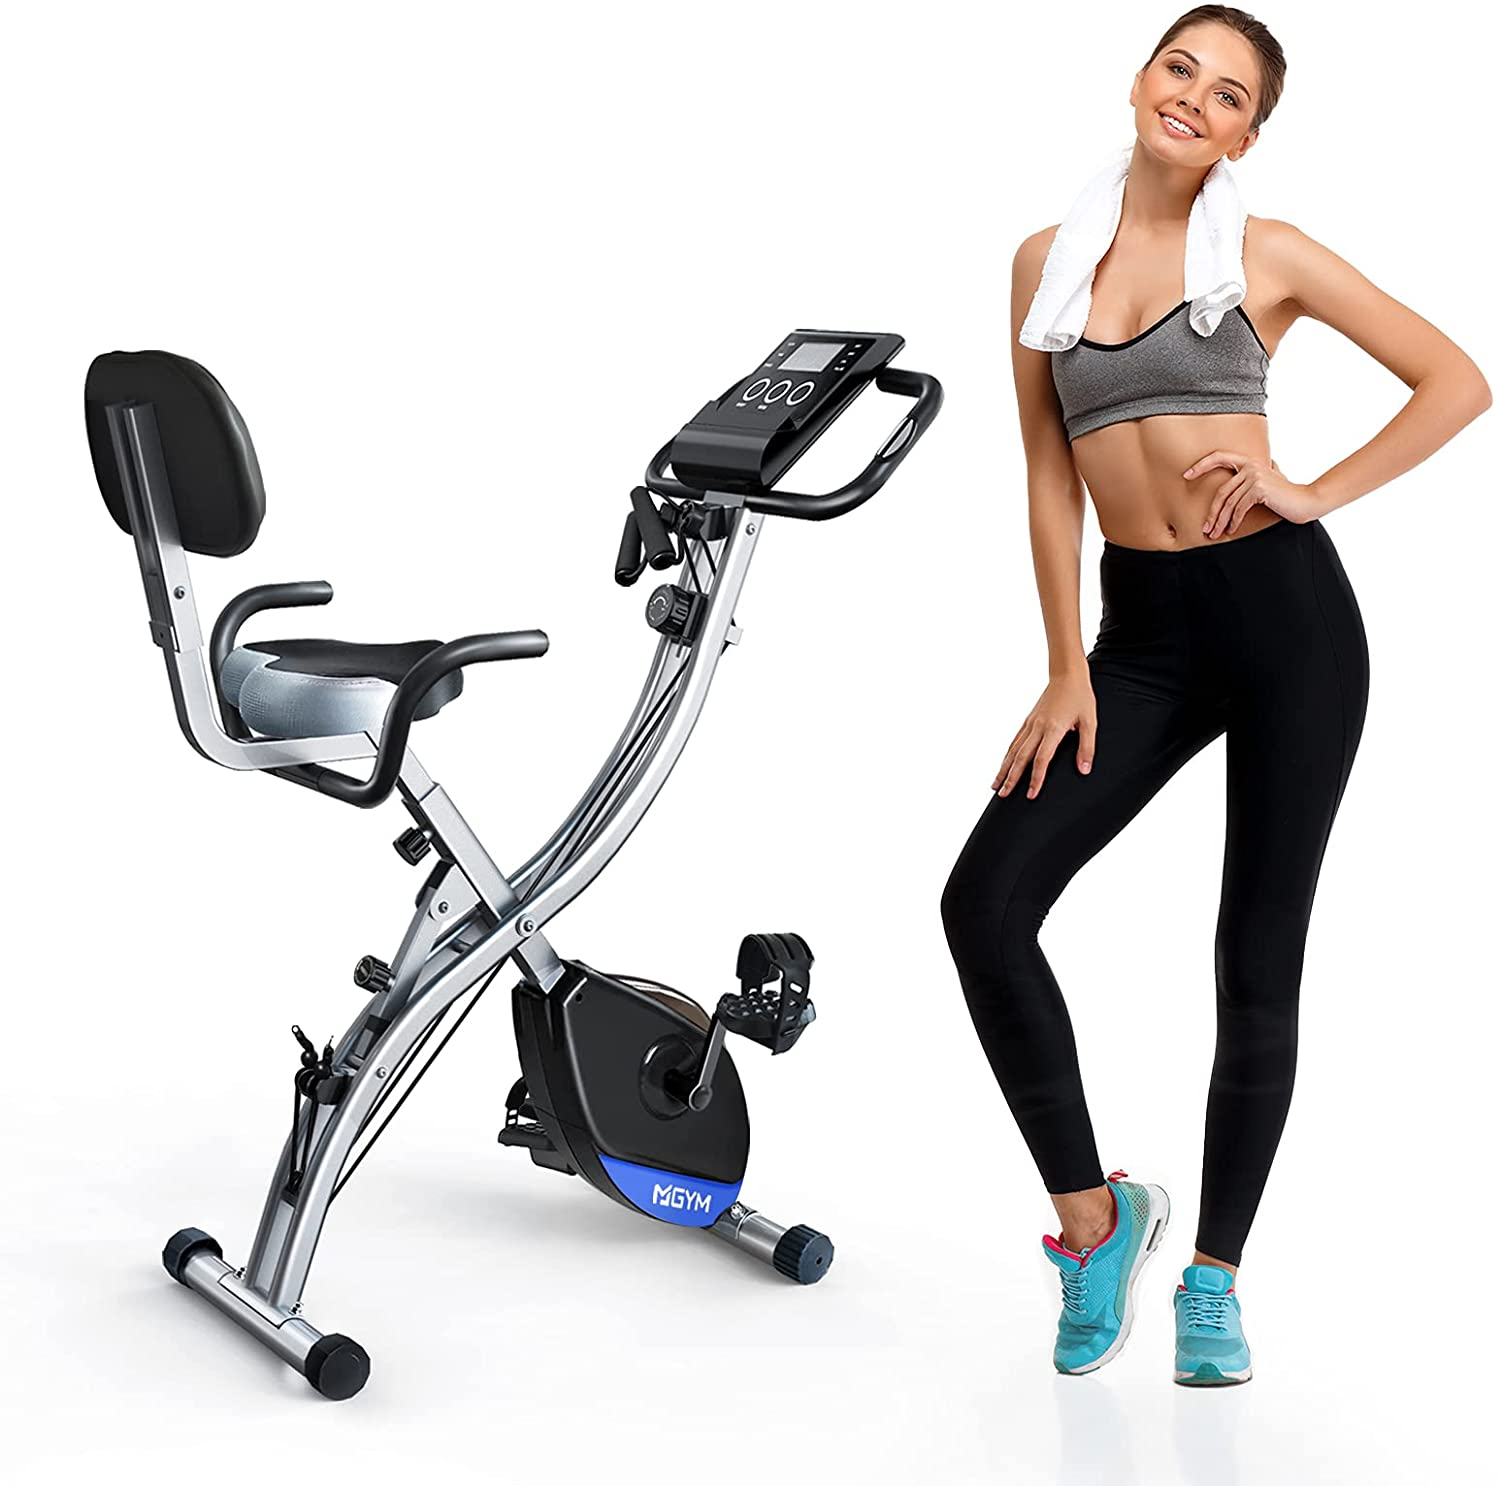 MGYM Folding Exercise Bike, Magnetic Resistance 3-in-1 Upright Recumbent Stationary Fitness Bikes 300lb Capacity with Arm Workout Band Extra Large Seat Cushion, Home Gym Cardio Training Equipment for Men Women